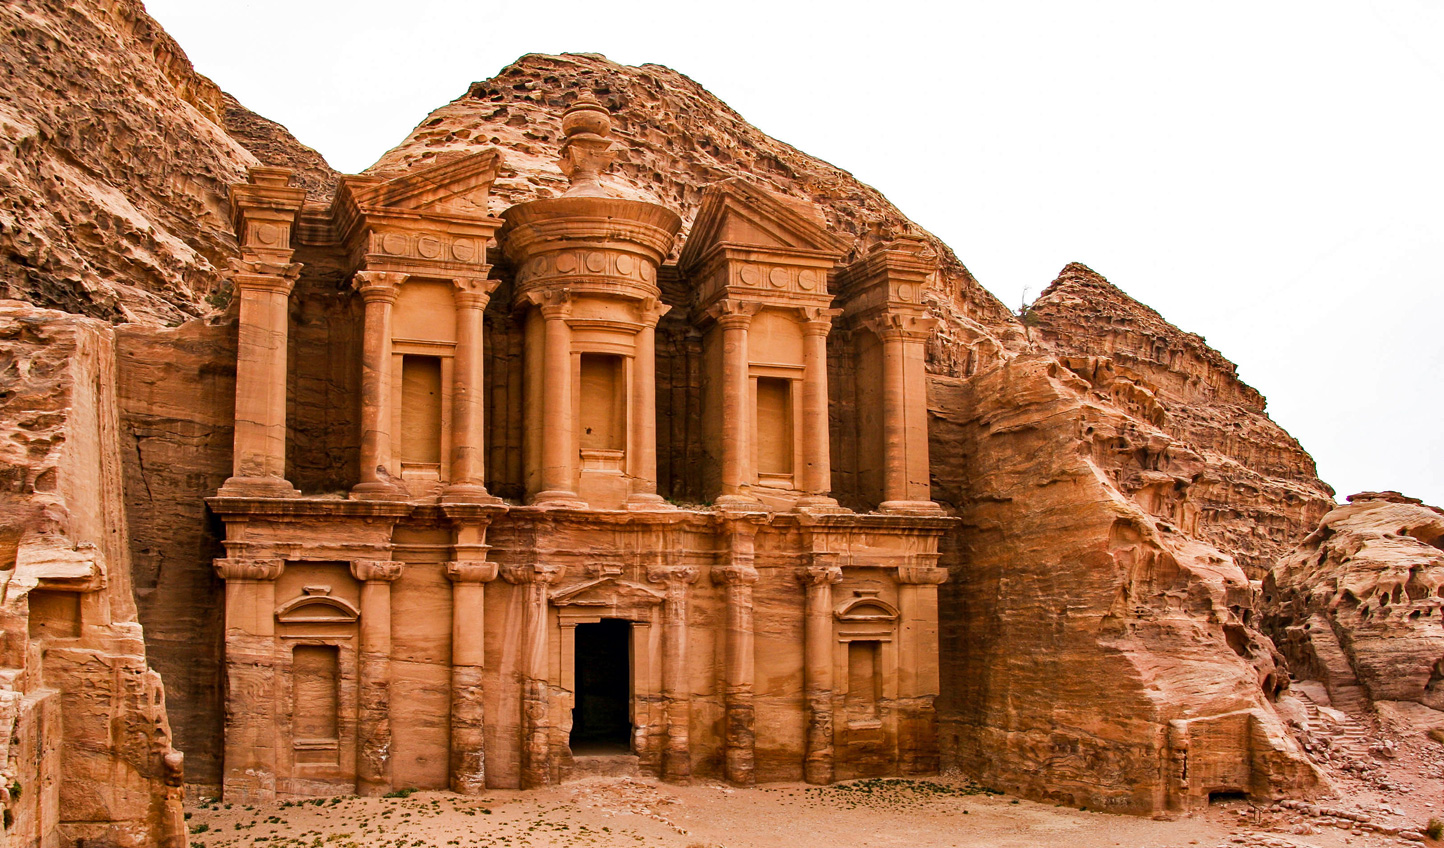 Take in ancient monuments and lost civilizations in a journey through Jordan and Oman